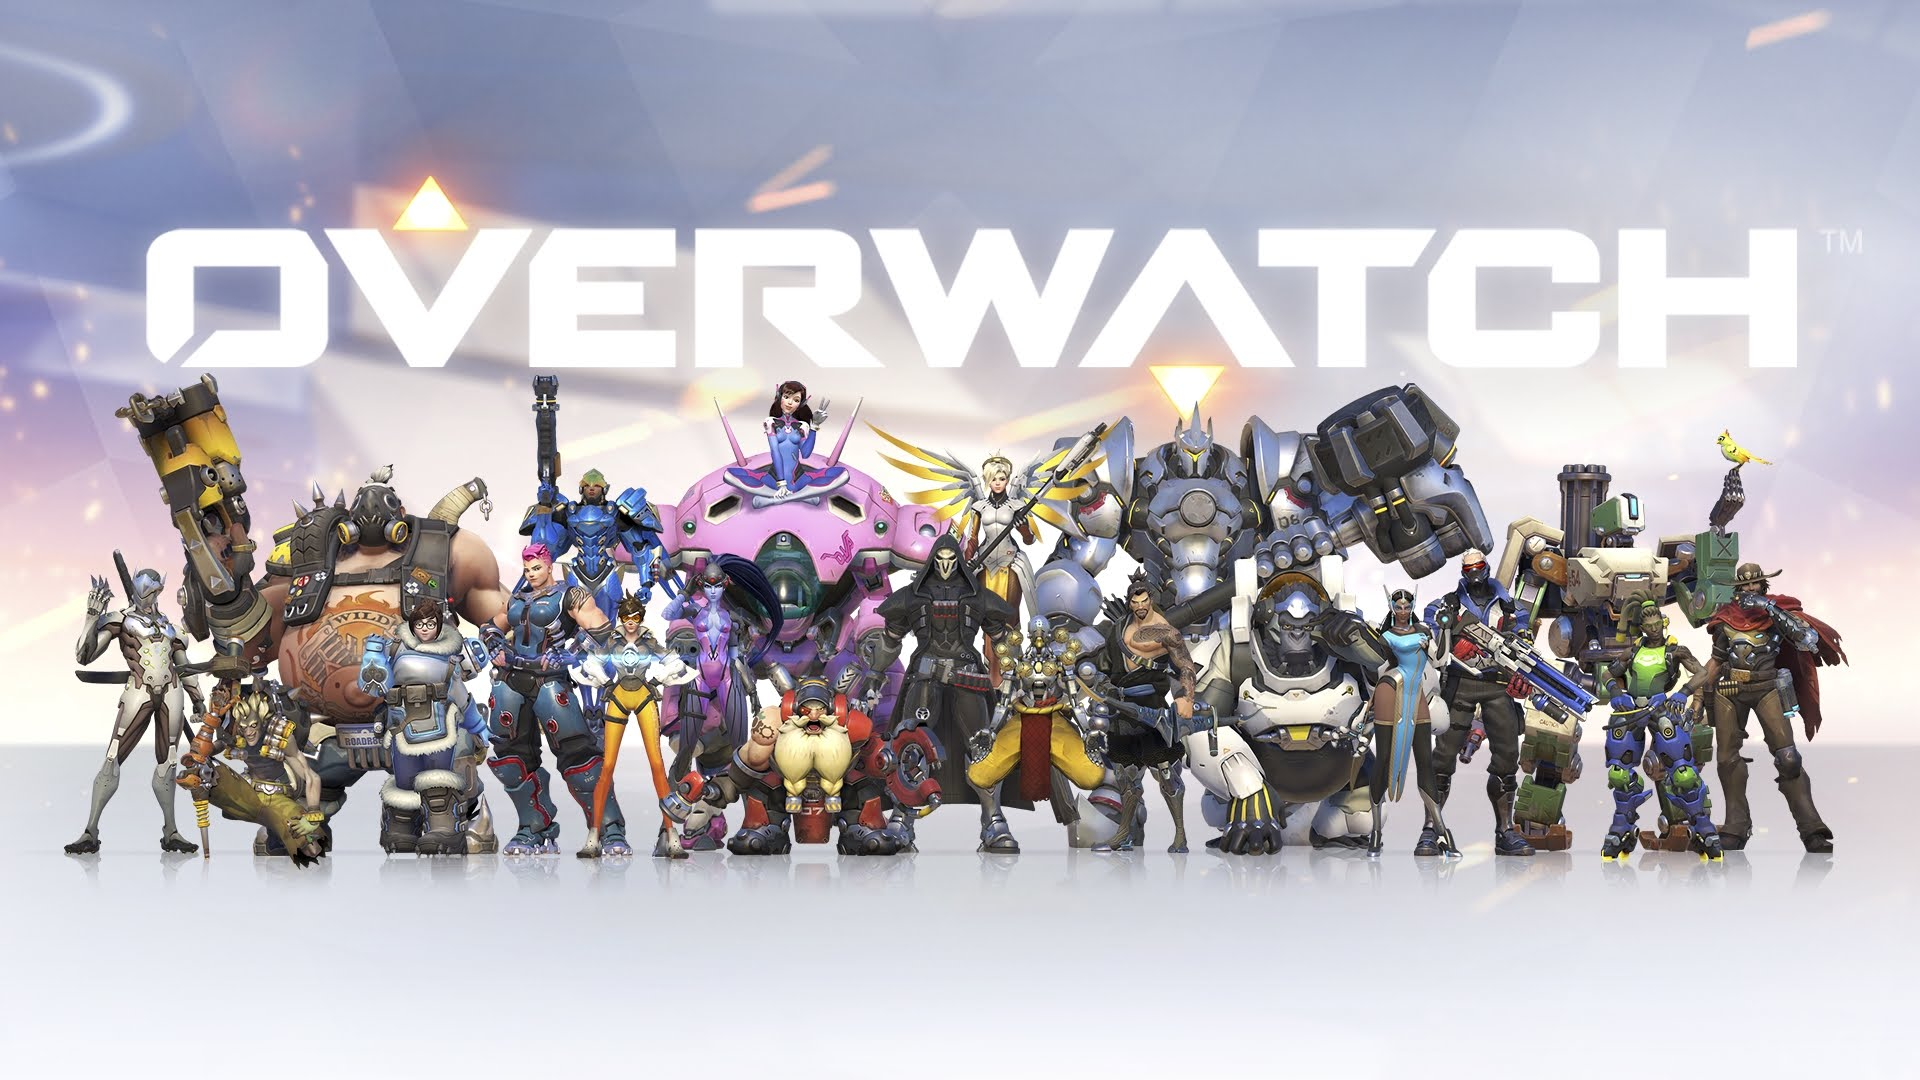 Overwatch Crack 2019 Full Torrent Free Updated Download